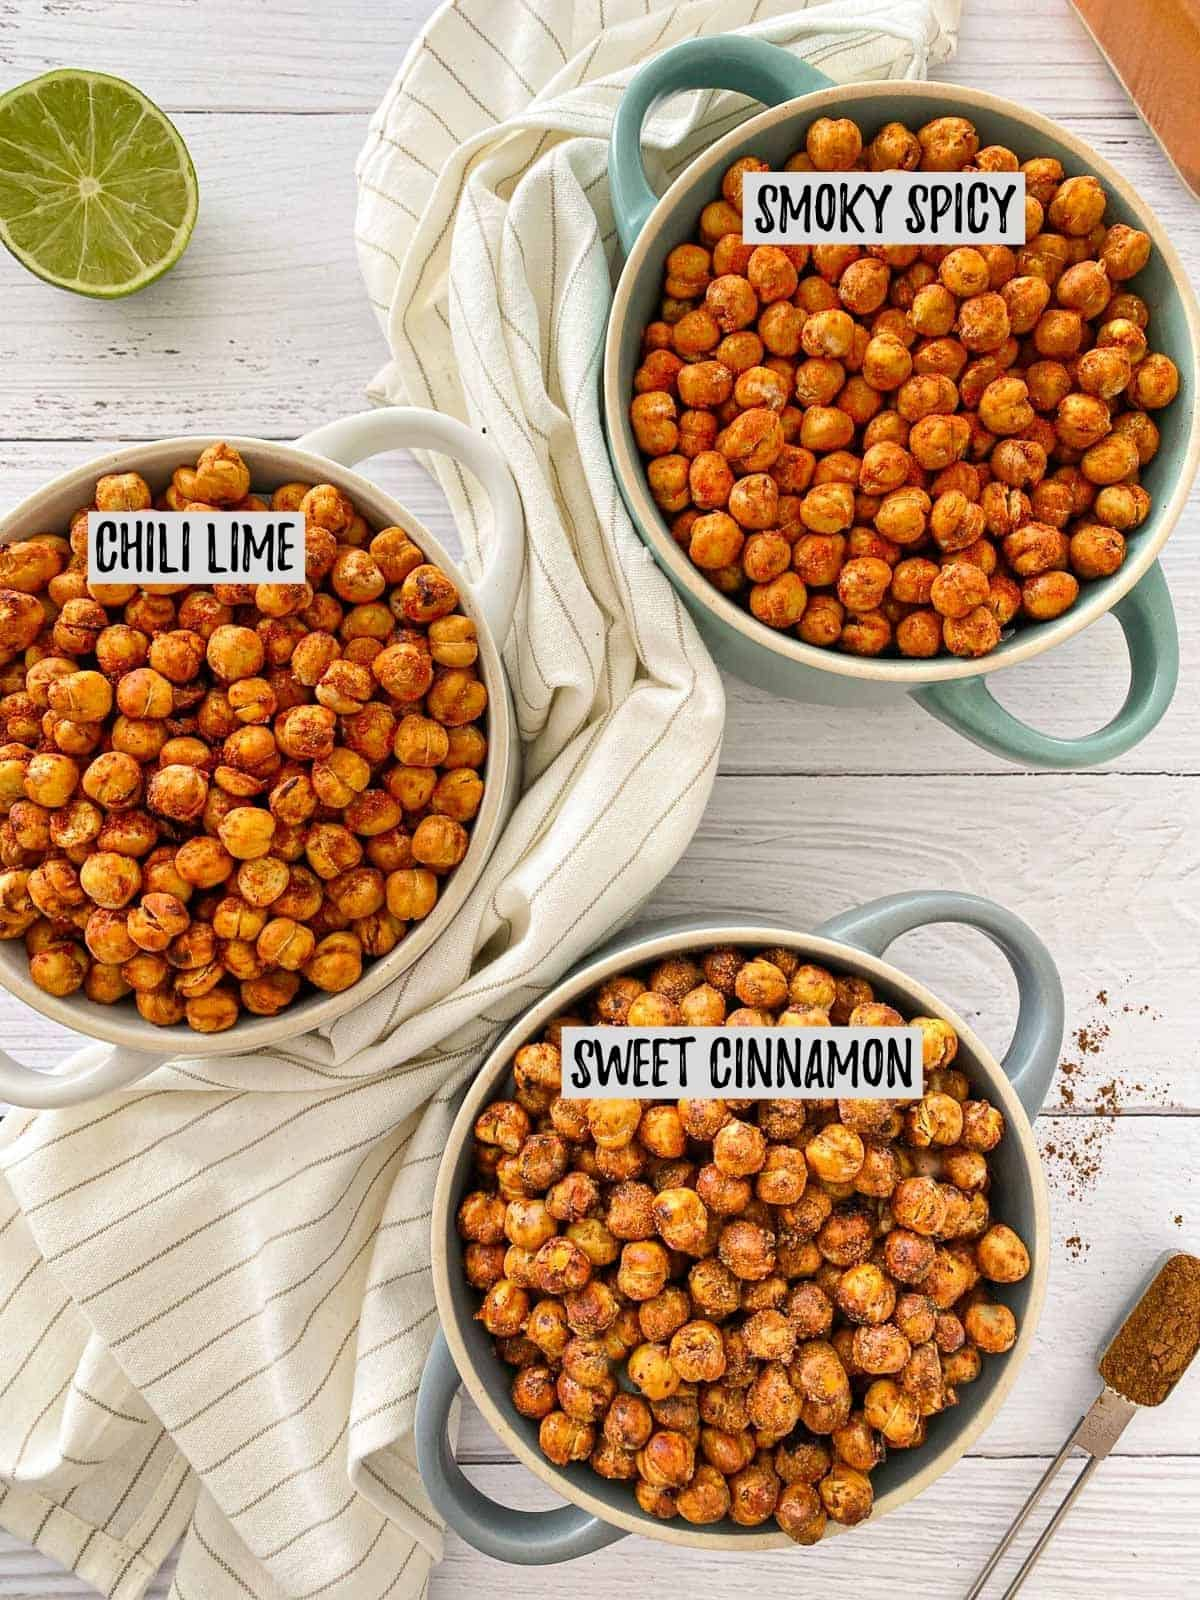 Three flavours of air fried chickpeas in 3 different bowls on white deck.